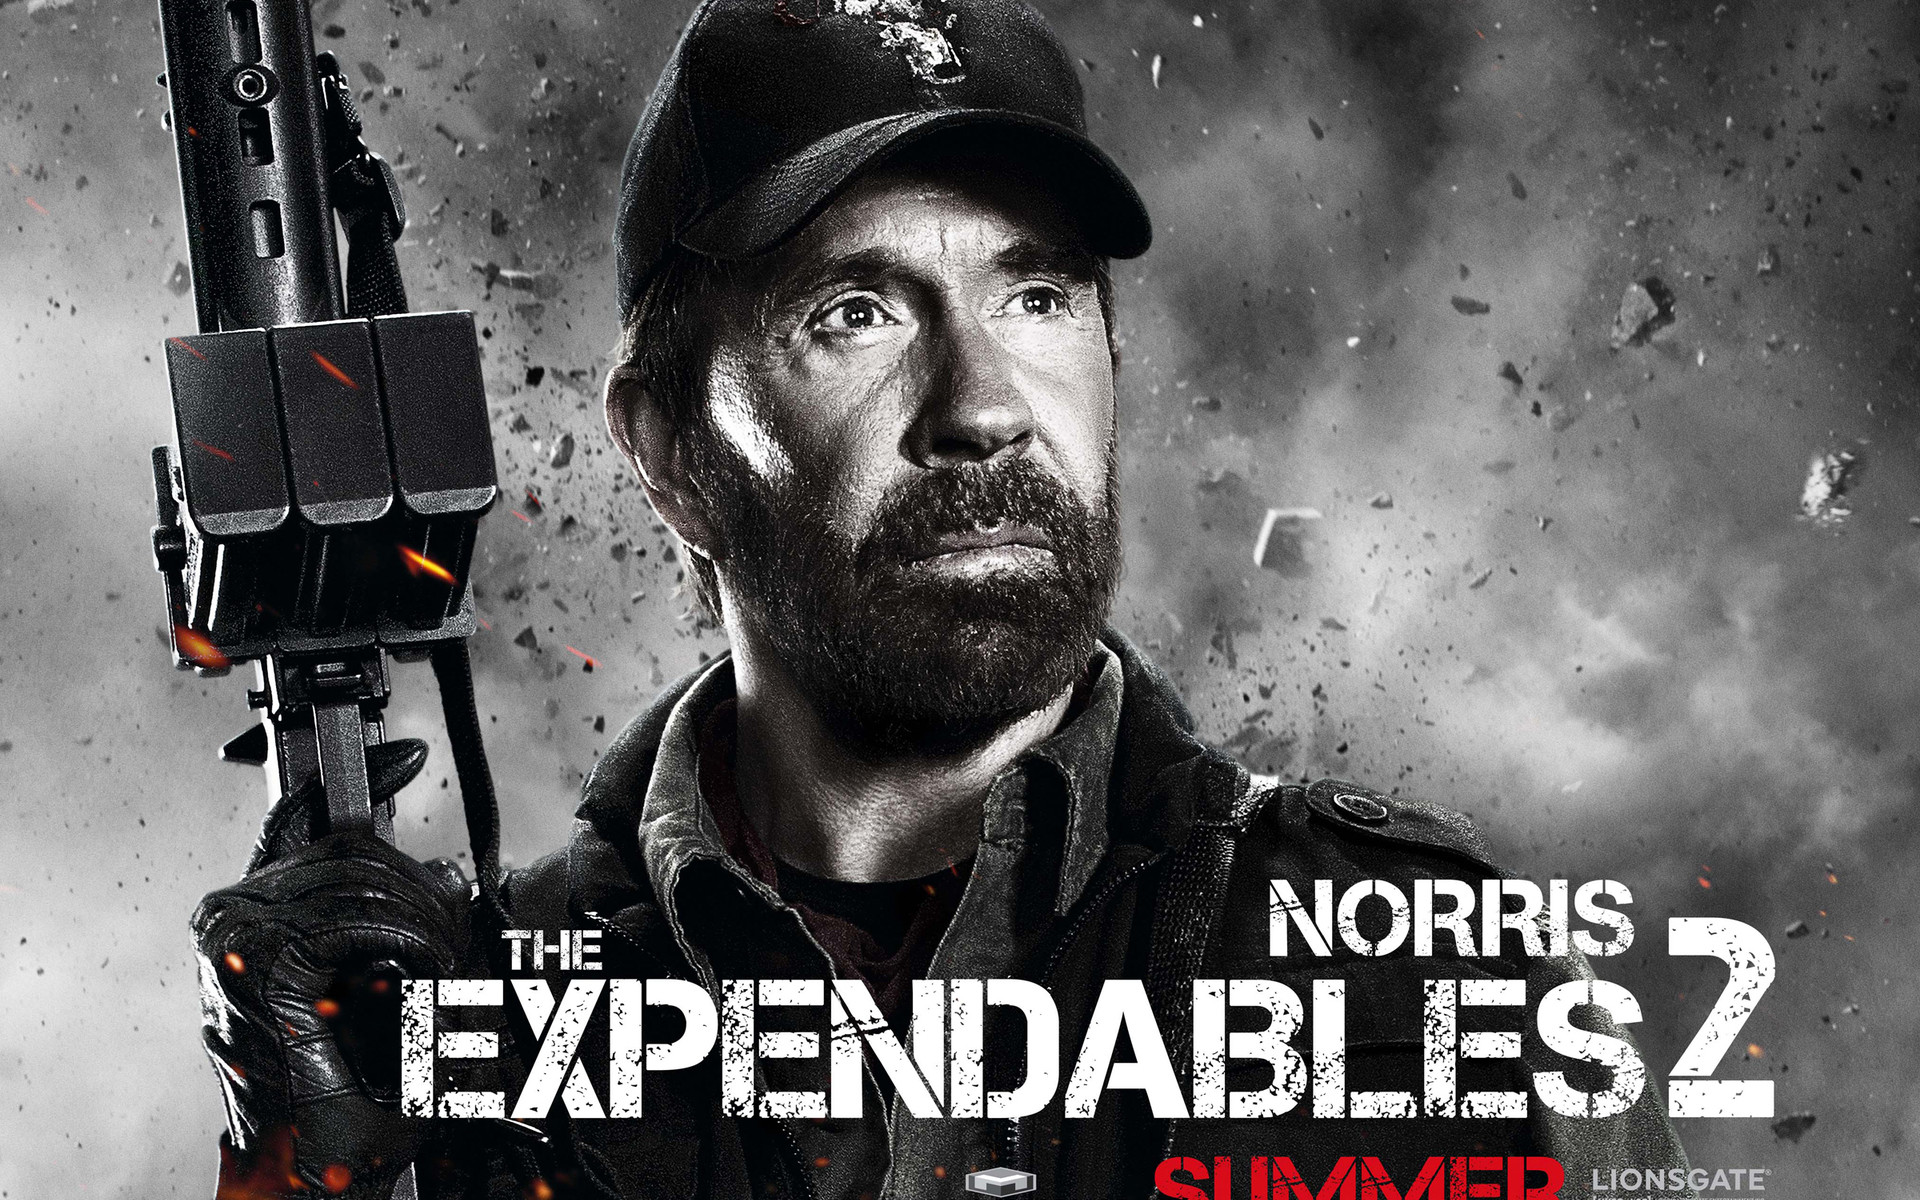 1920x1200 Movie - The Expendables 2 Booker (The Expendables) Chuck Norris Wallpaper